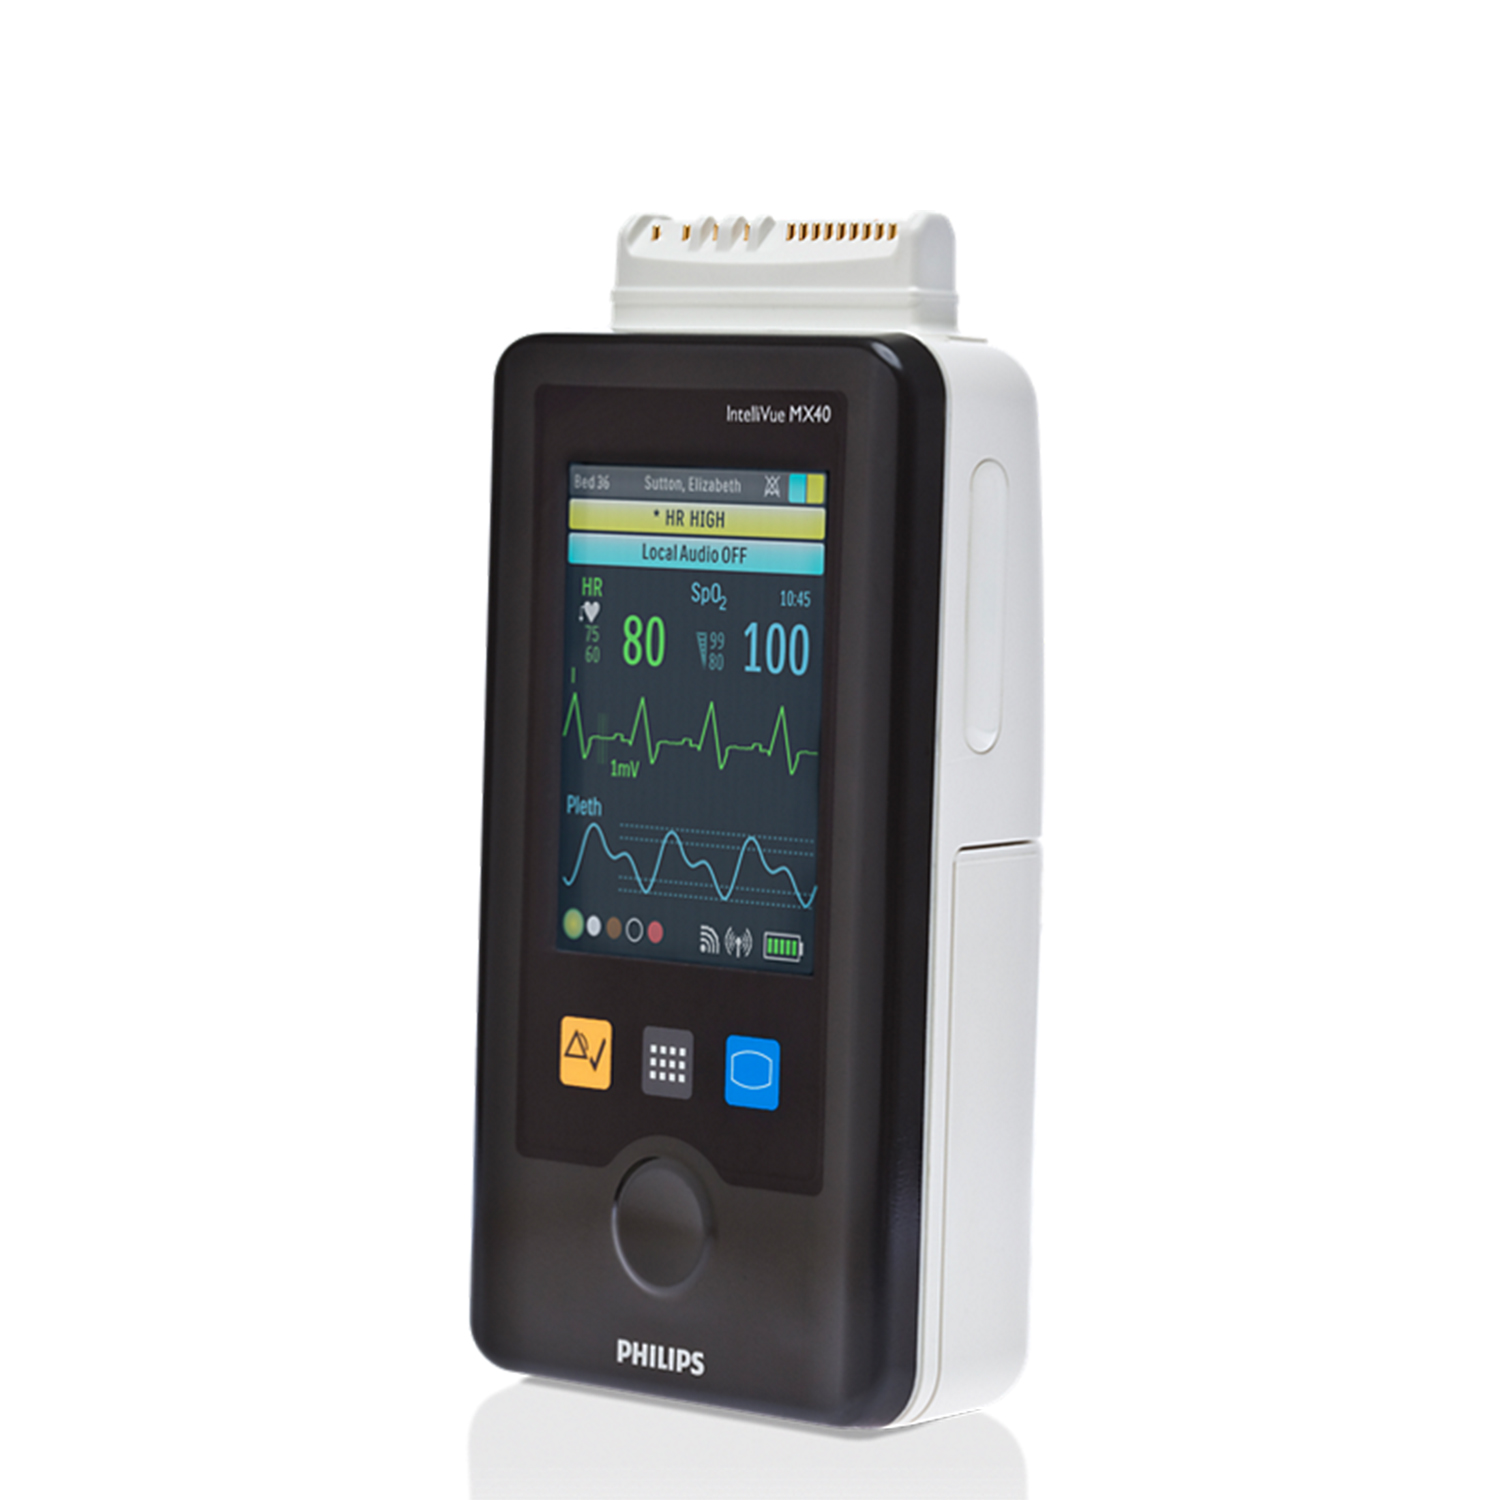 Philips Intellivue MX40 Telemetry Device